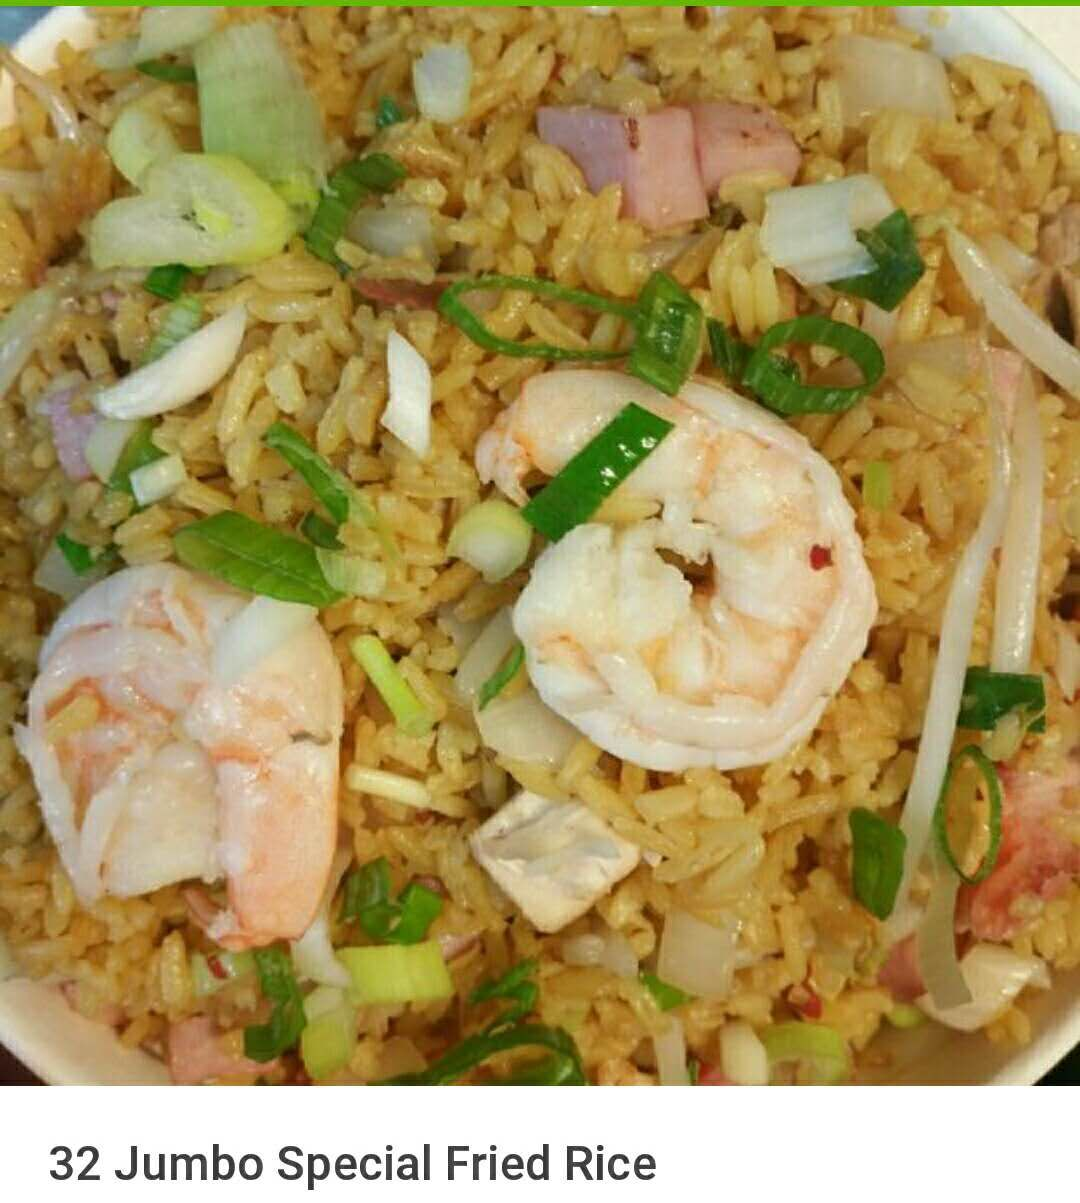 32. Jumbo Special Fried Rice